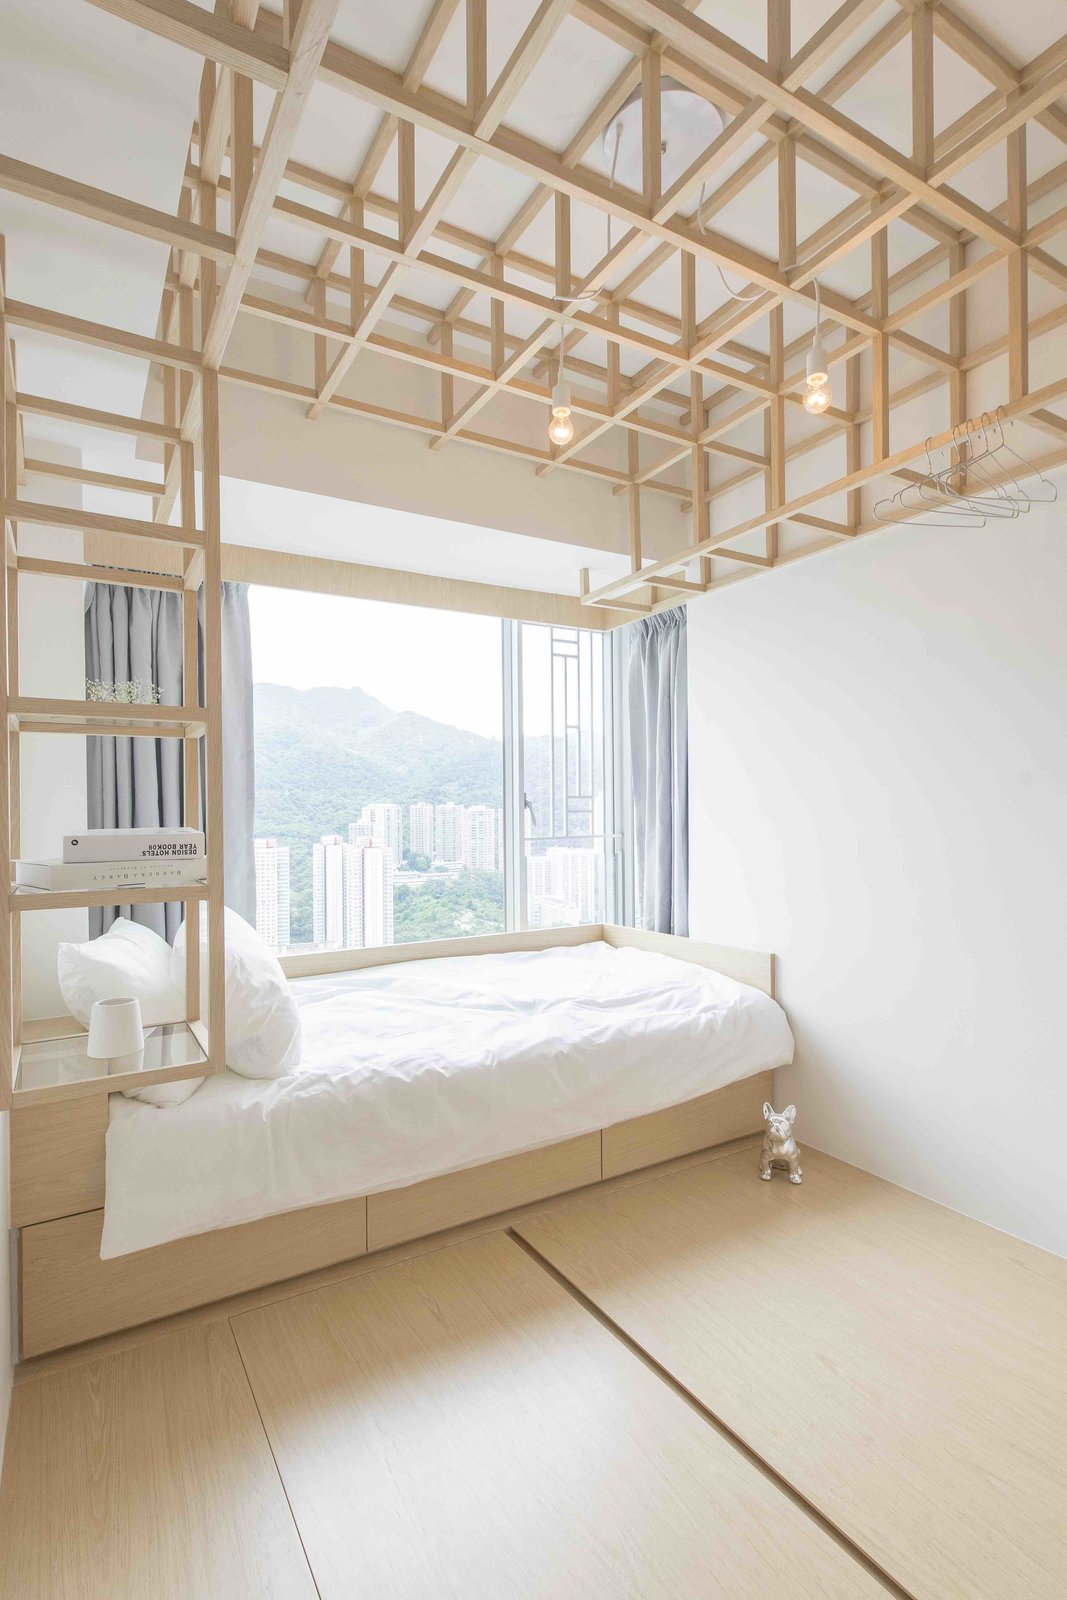 """Bedroom, Shelves, Bed, Ceiling Lighting, and Light Hardwood Floor Following the influential saying adopted by Ludwig Mies van der Rohe, """"less is more,  Photo 9 of 15 in An Origami-Inspired Apartment in Hong Kong With Tons of Smart Storage"""